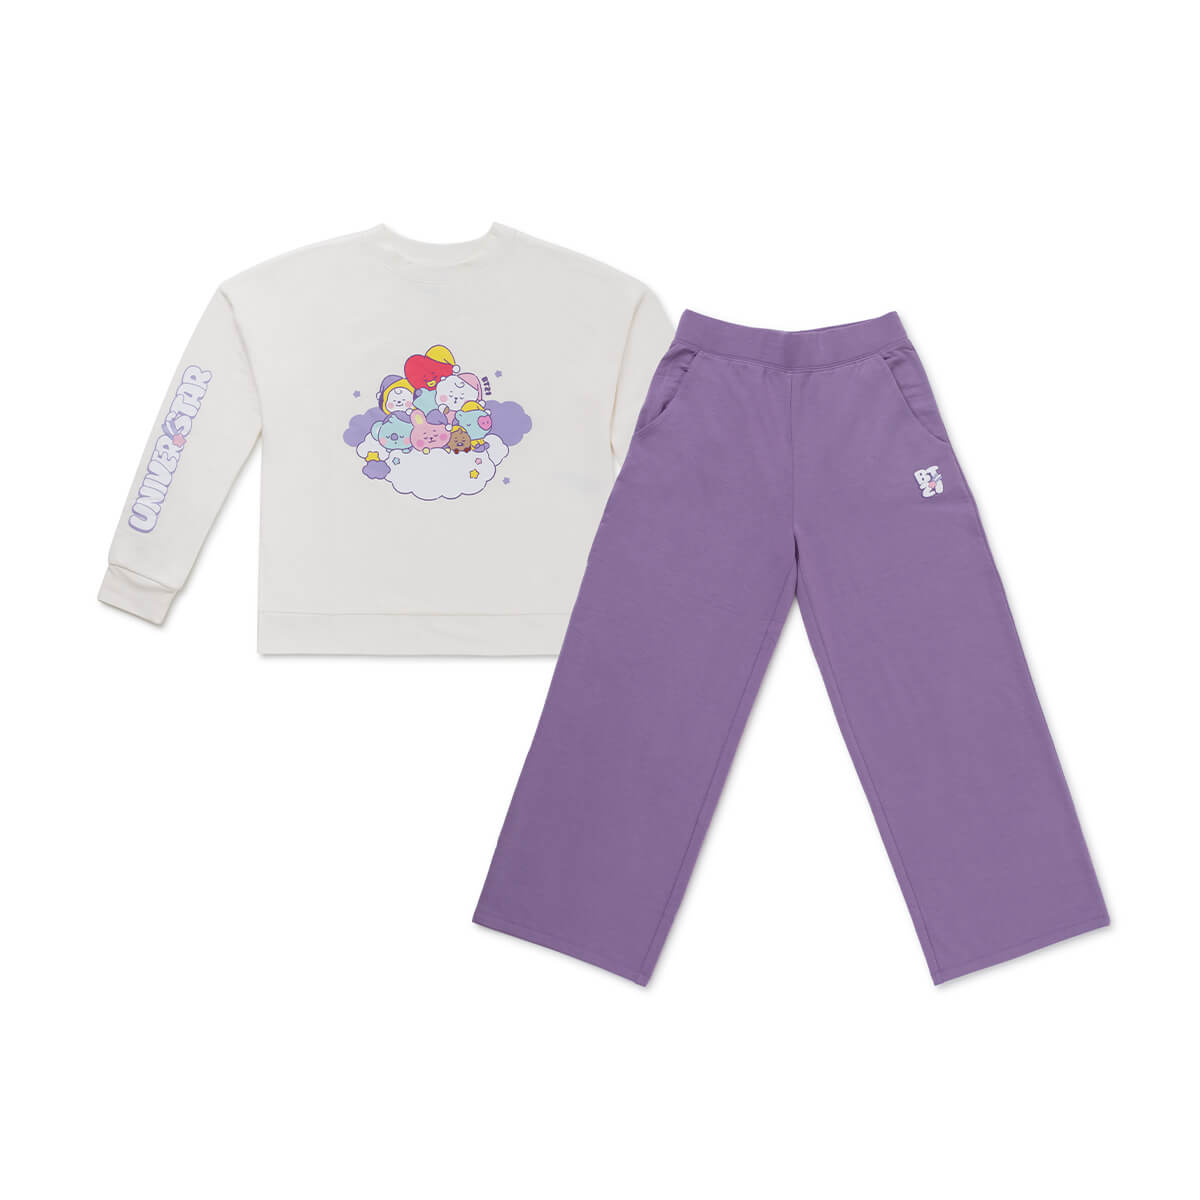 BT21 BABY Dream Adult Pajama Set Ivory / Purple